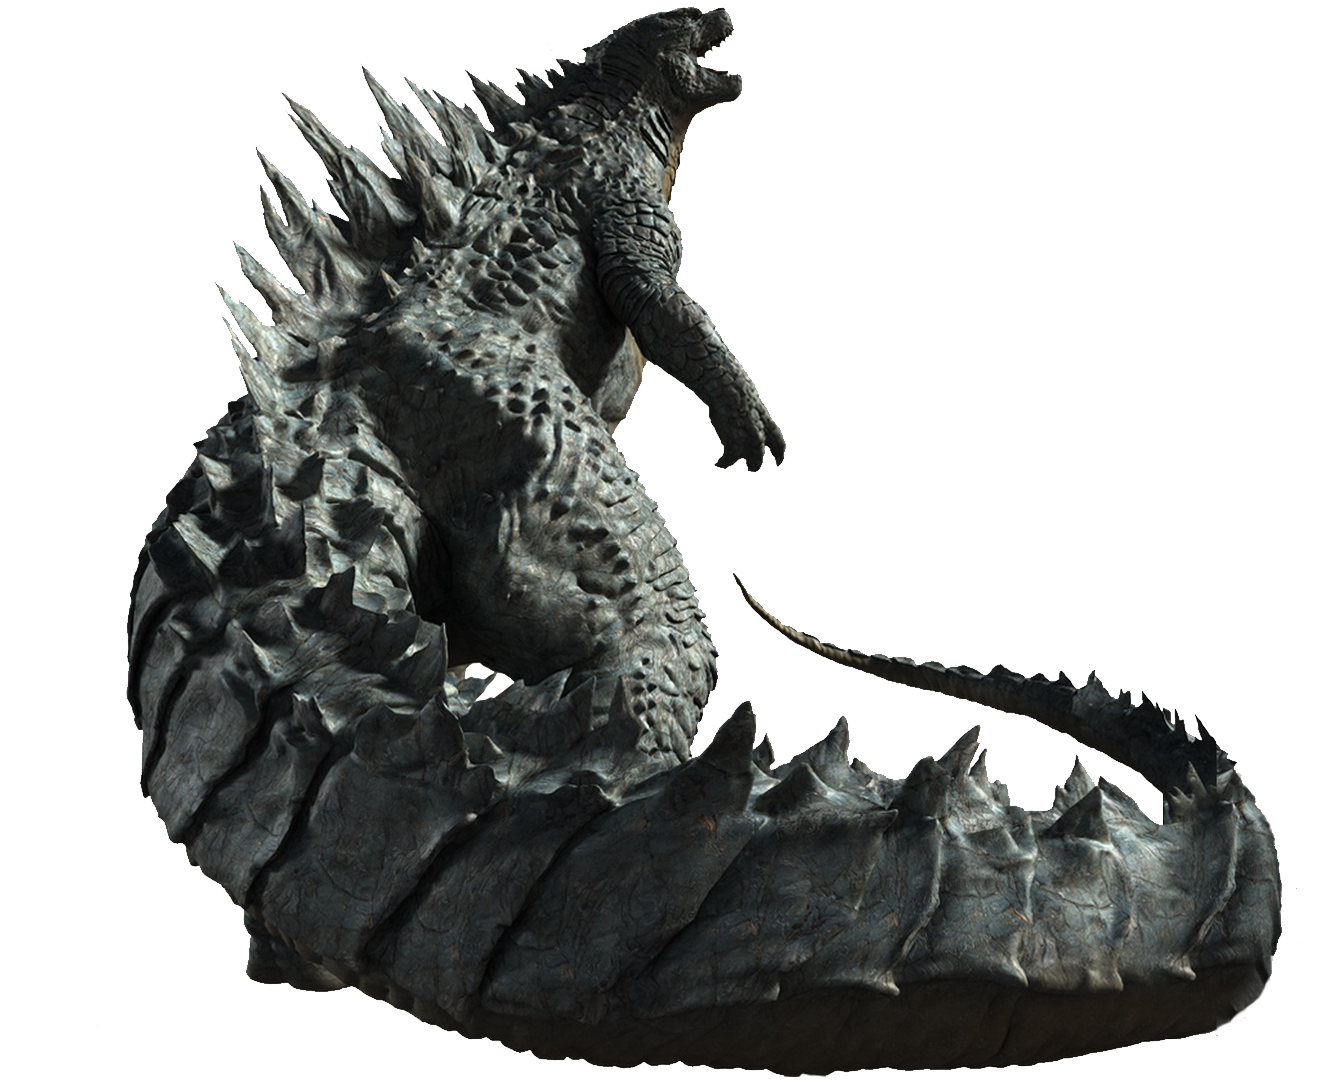 Godzilla 1962 png. Another full body image